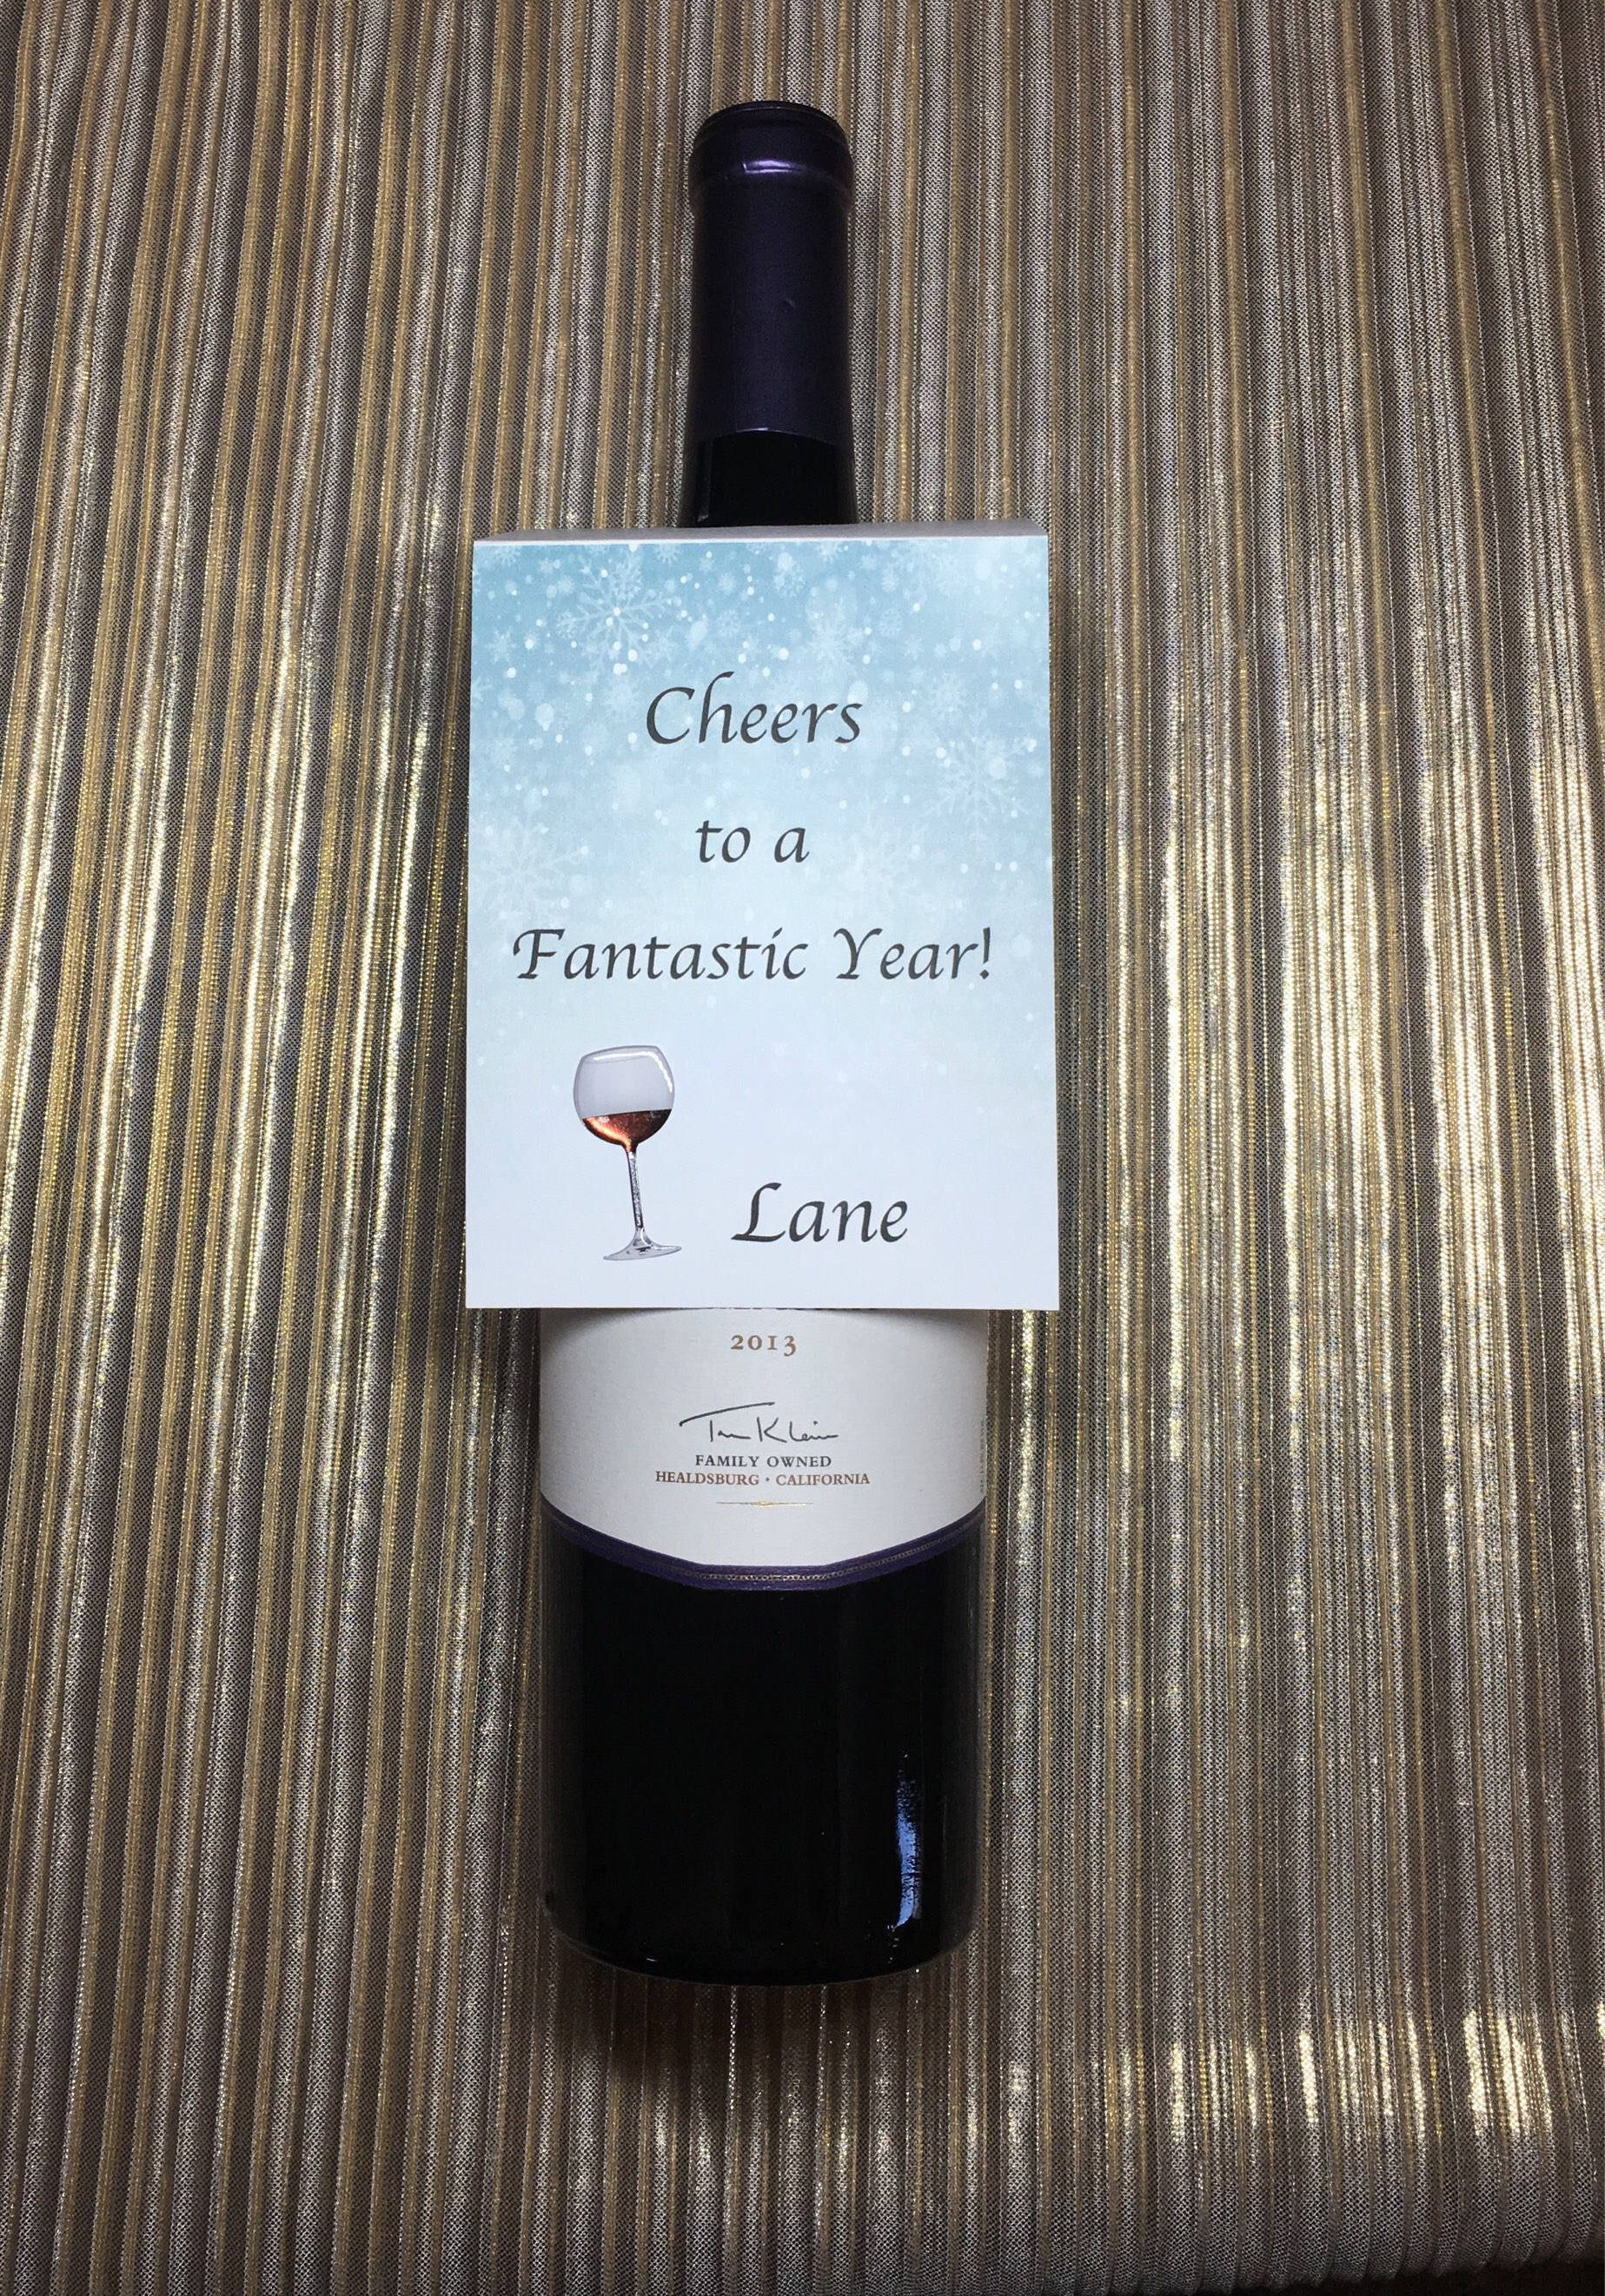 Etched Accessories Wine Neck Labels Wine Neck Tags Wine Design